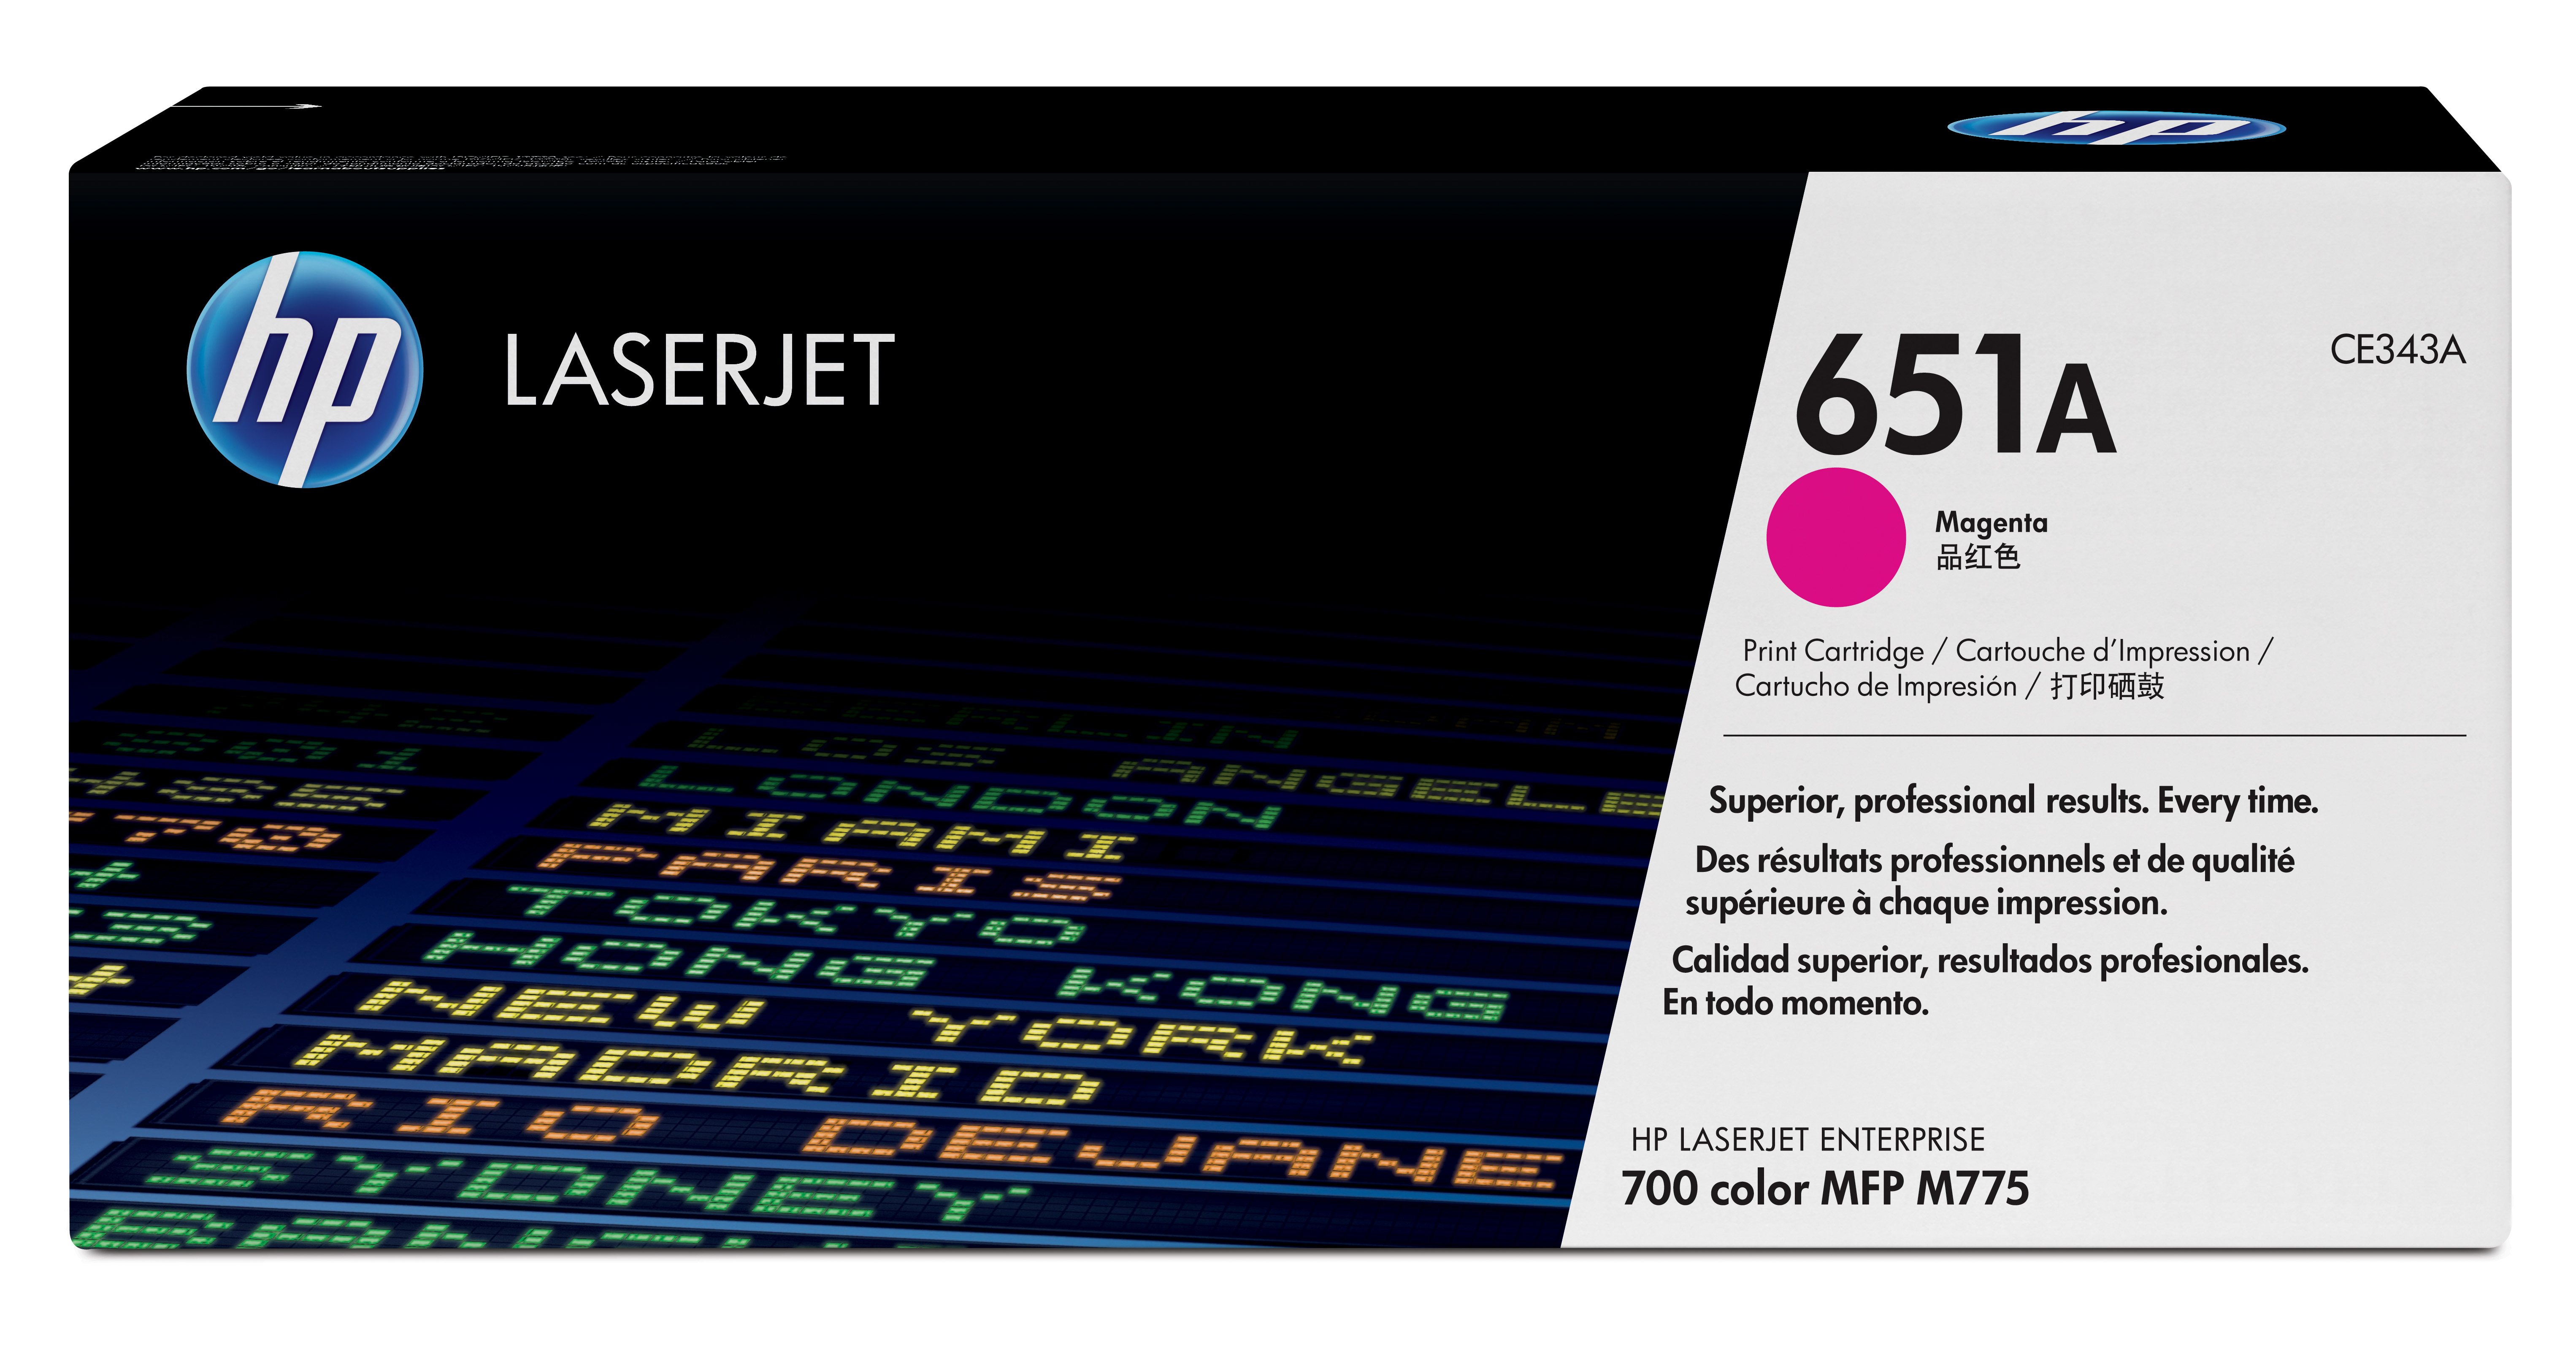 HP 651A Magenta Toner Cartridge CE343A